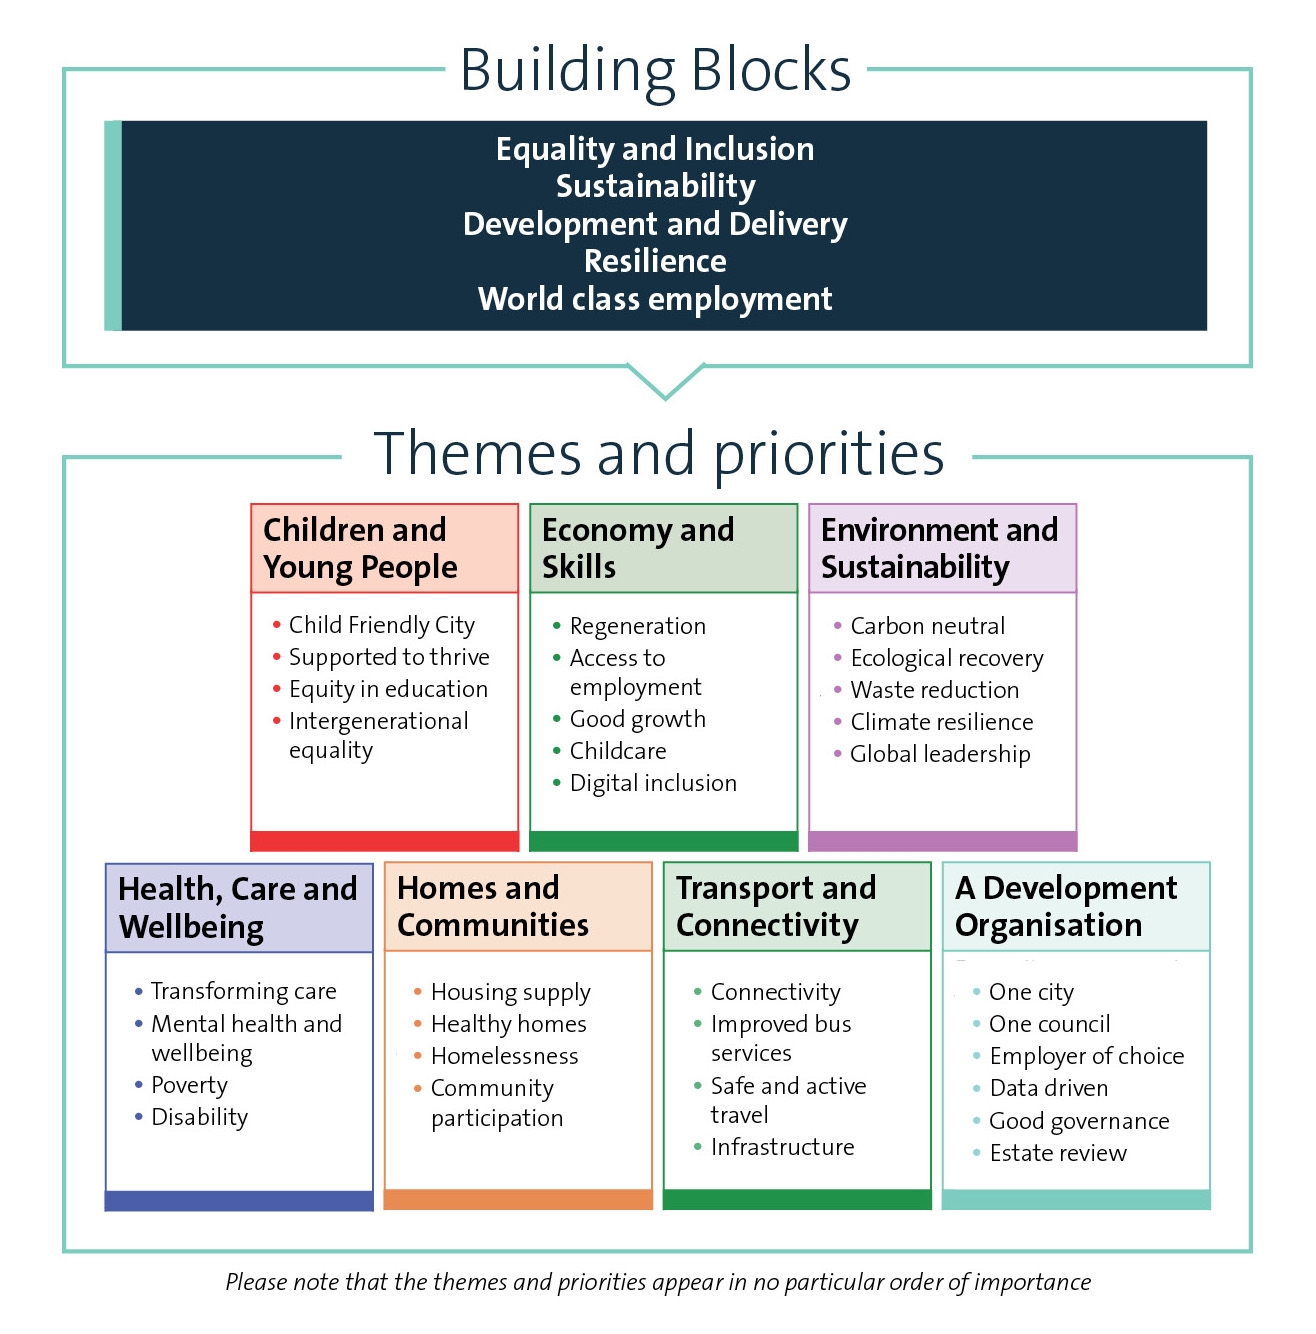 Building blocks: •Equality and Inclusion •Sustainability •Development and Delivery •Resilience •World class employment  Themes and priorities:  Children and Young People •Child Friendly City •Supported to thrive •Equity in education •Intergenerational equality Economy and Skills •Regeneration •Access to employment •Good growth •Childcare •Digital inclusion Environment and Sustainability •Carbon neutral •Ecological recovery •Waste reduction •Climate resilience •Global leadership Health, Care and Wellbeing •Transforming care •Mental health and wellbeing •Poverty •Disability Homes and Communities •Housing supply •Healthy homes •Homelessness •Community participation  Transport and Connectivity •Connectivity •Improved bus services •Safe and active travel •Infrastructure A Development Organisation •One city •One council •Employer of choice •Data driven •Good governance •Estate review